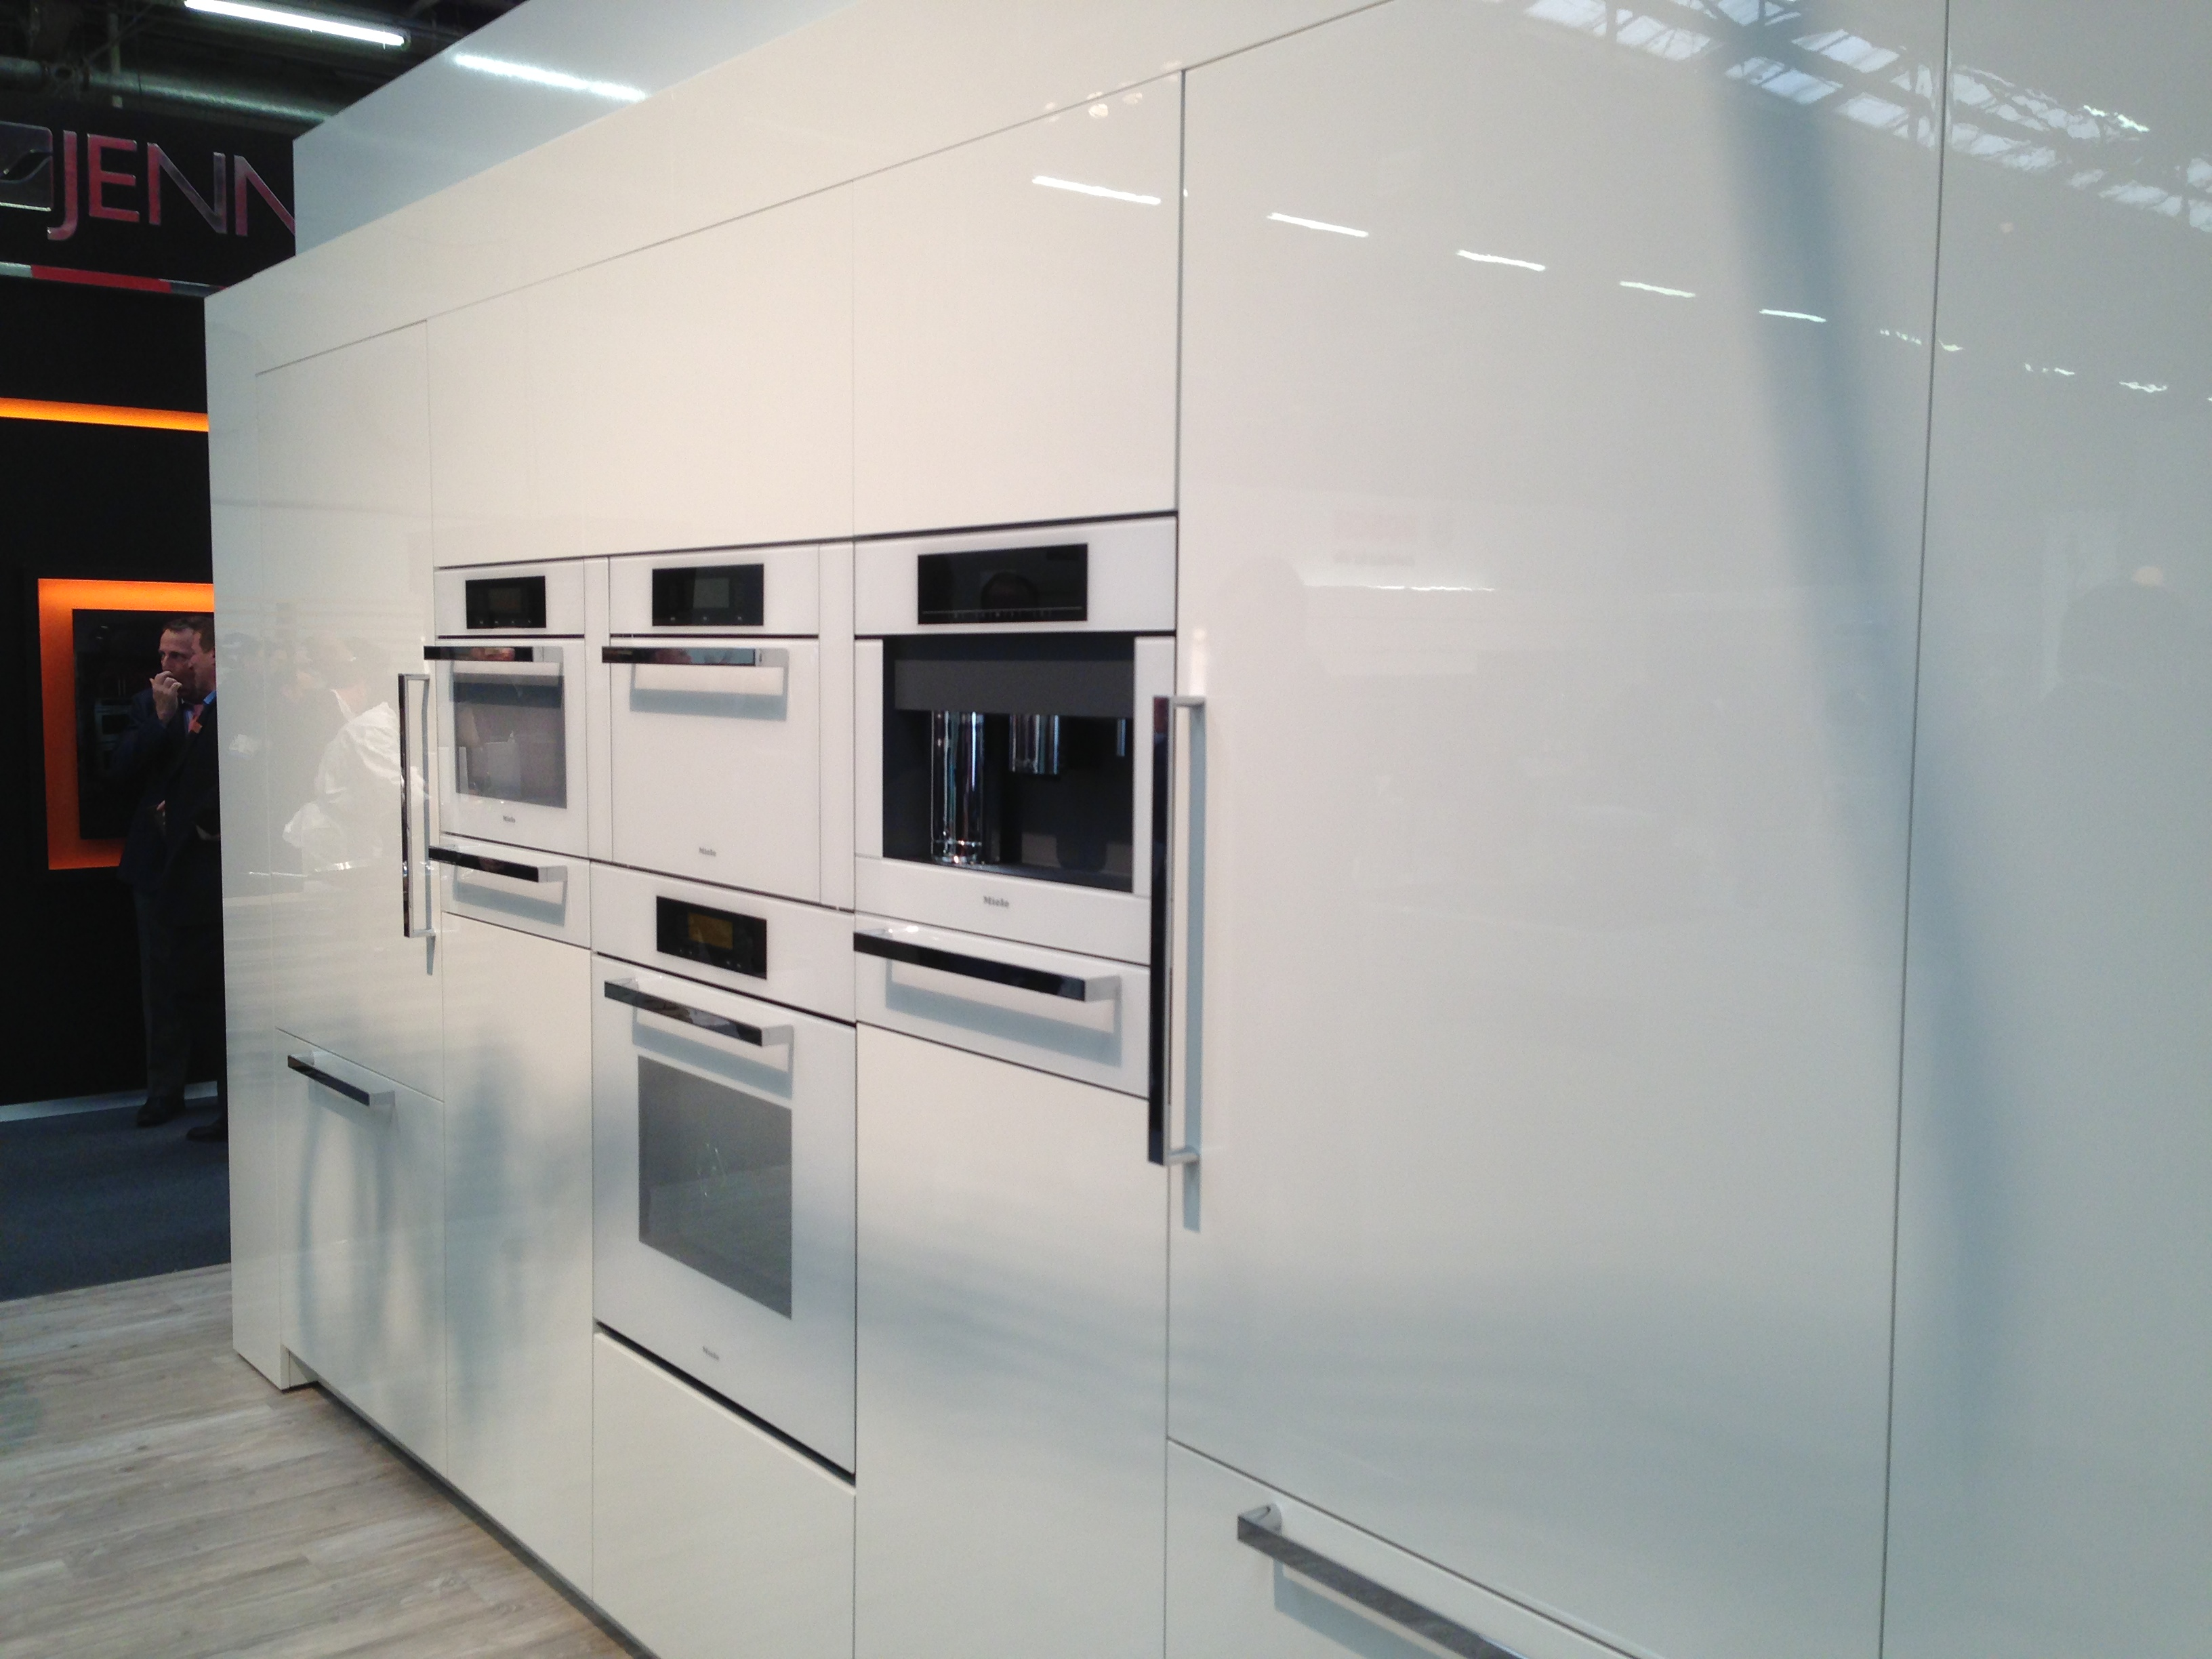 All White Kitchens With White Appliances The Architectural Digest Show Part 1 Kieffer 39s Appliances